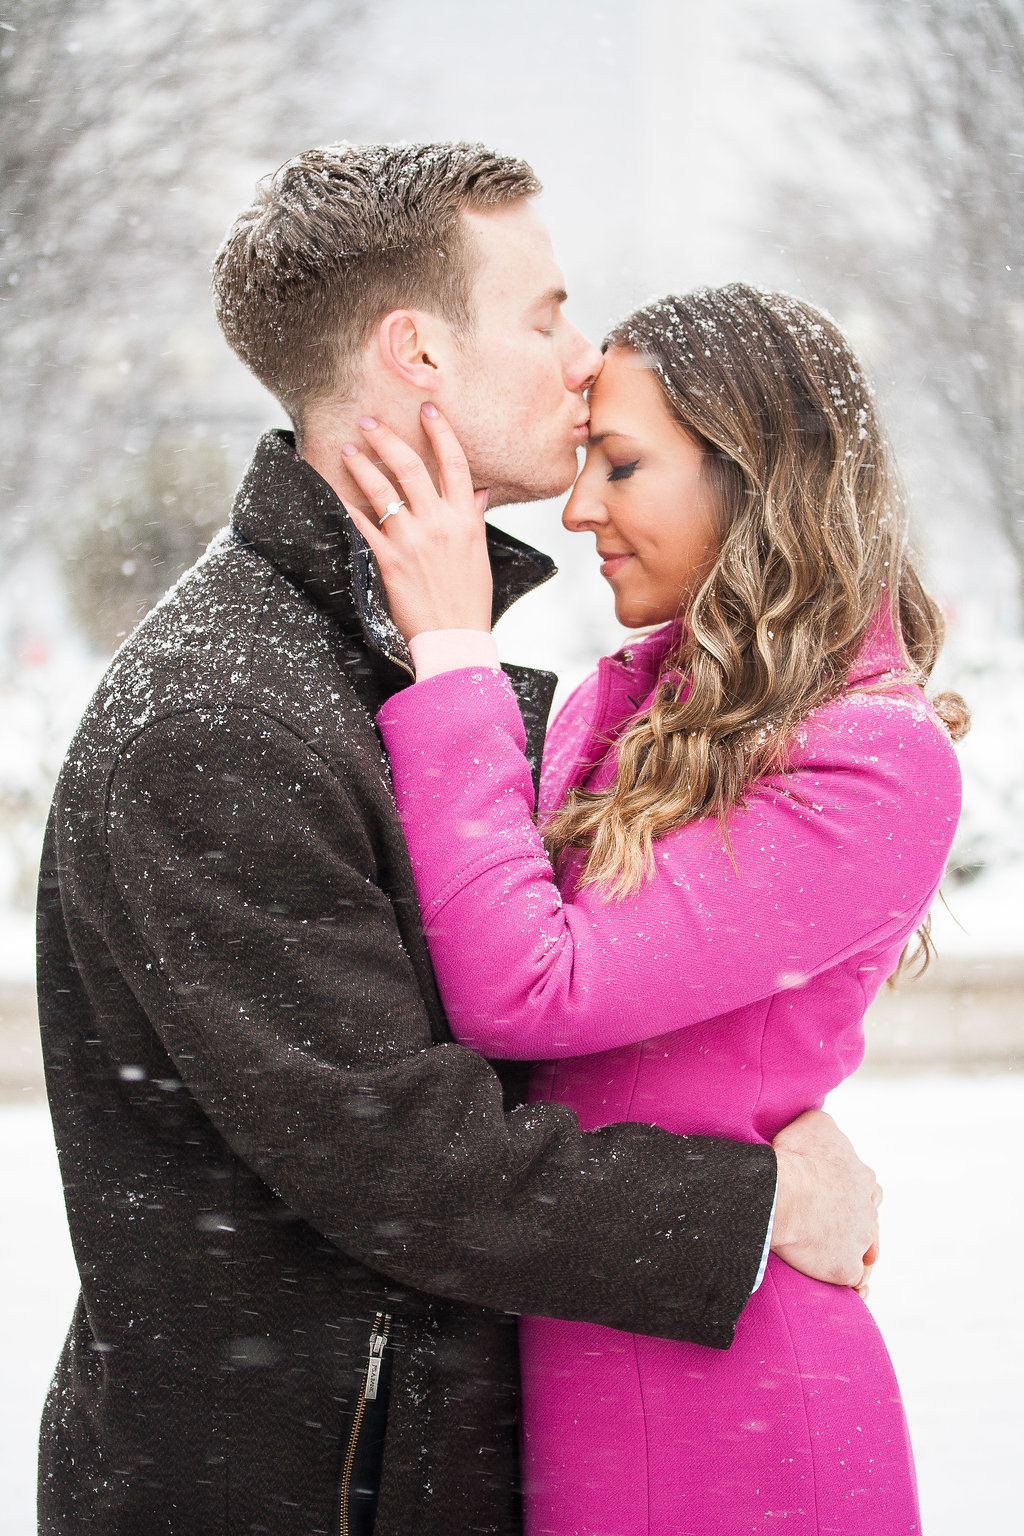 Millennium Park Chicago Illinois Winter Engagement Photographer Taylor Ingles 26